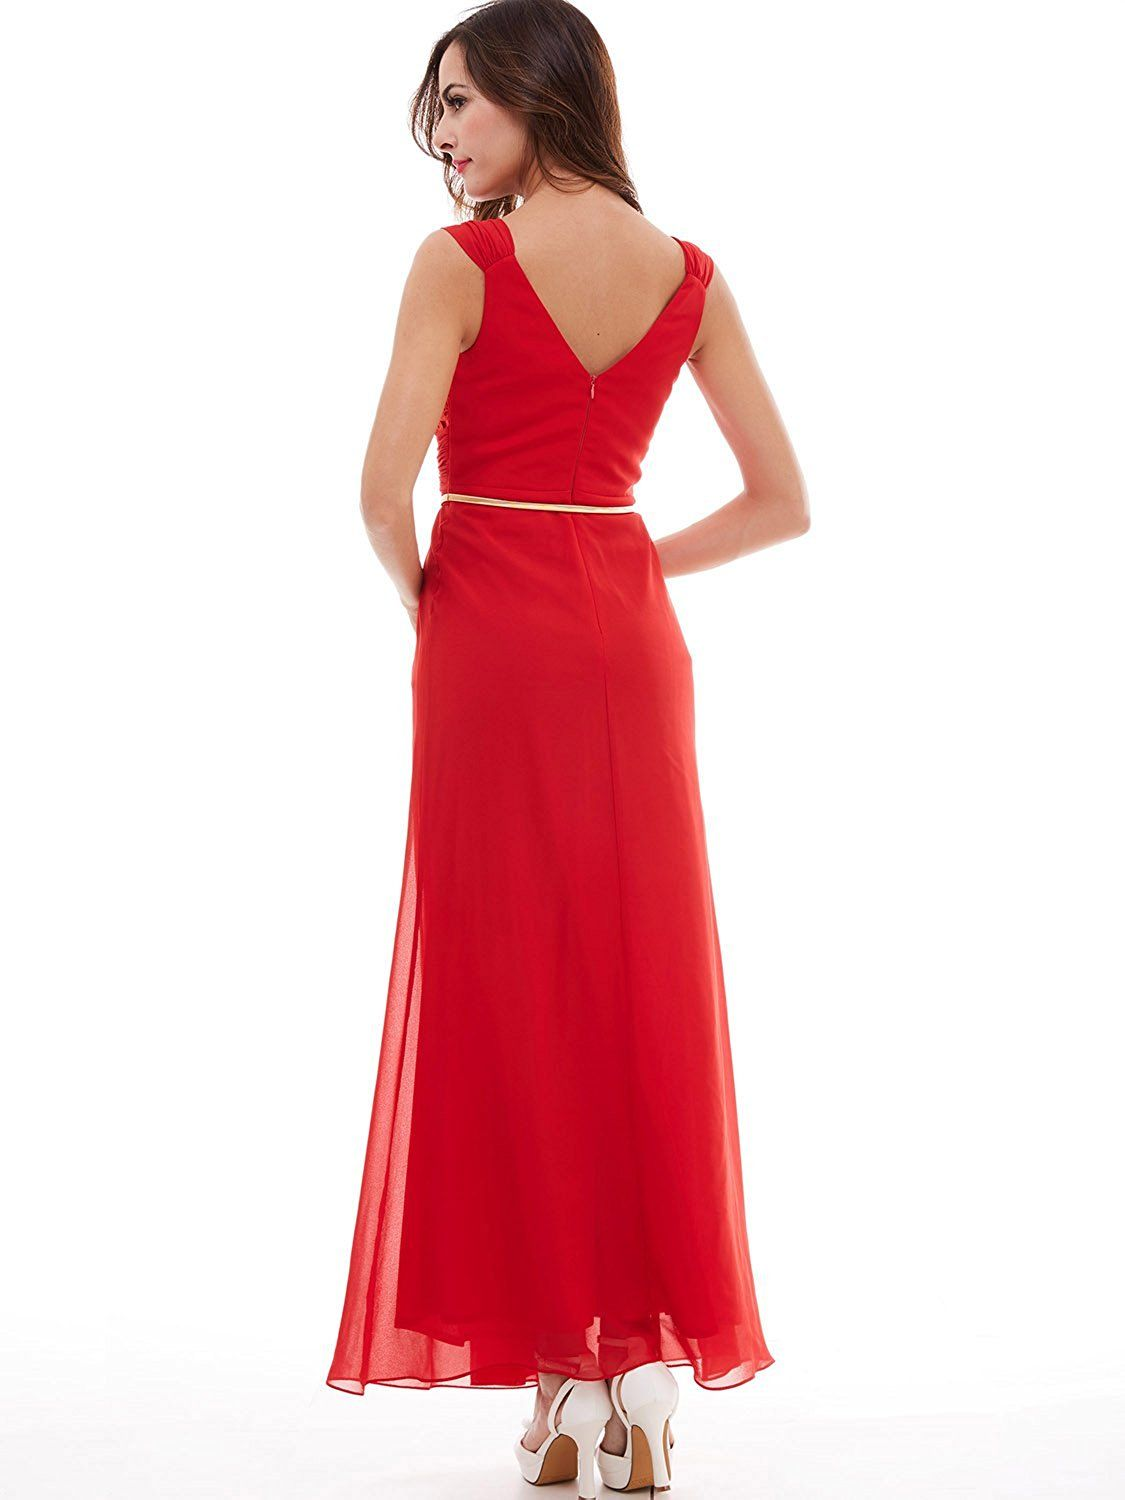 Tanpell Womens Double V Neck Pleats Ribbon Lace Floor Length Evening